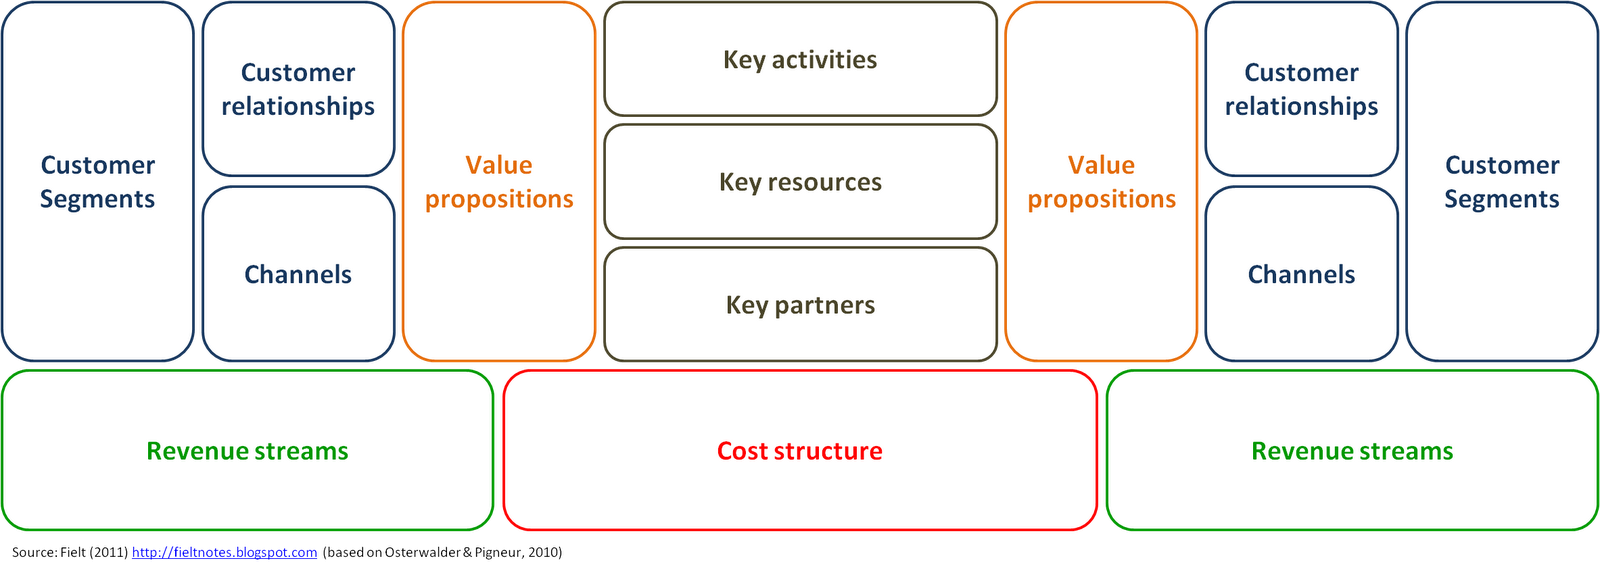 Fieltnotes Business Models Business It Research Alternative Business Model Canvas Templates The Two Sided Business Model